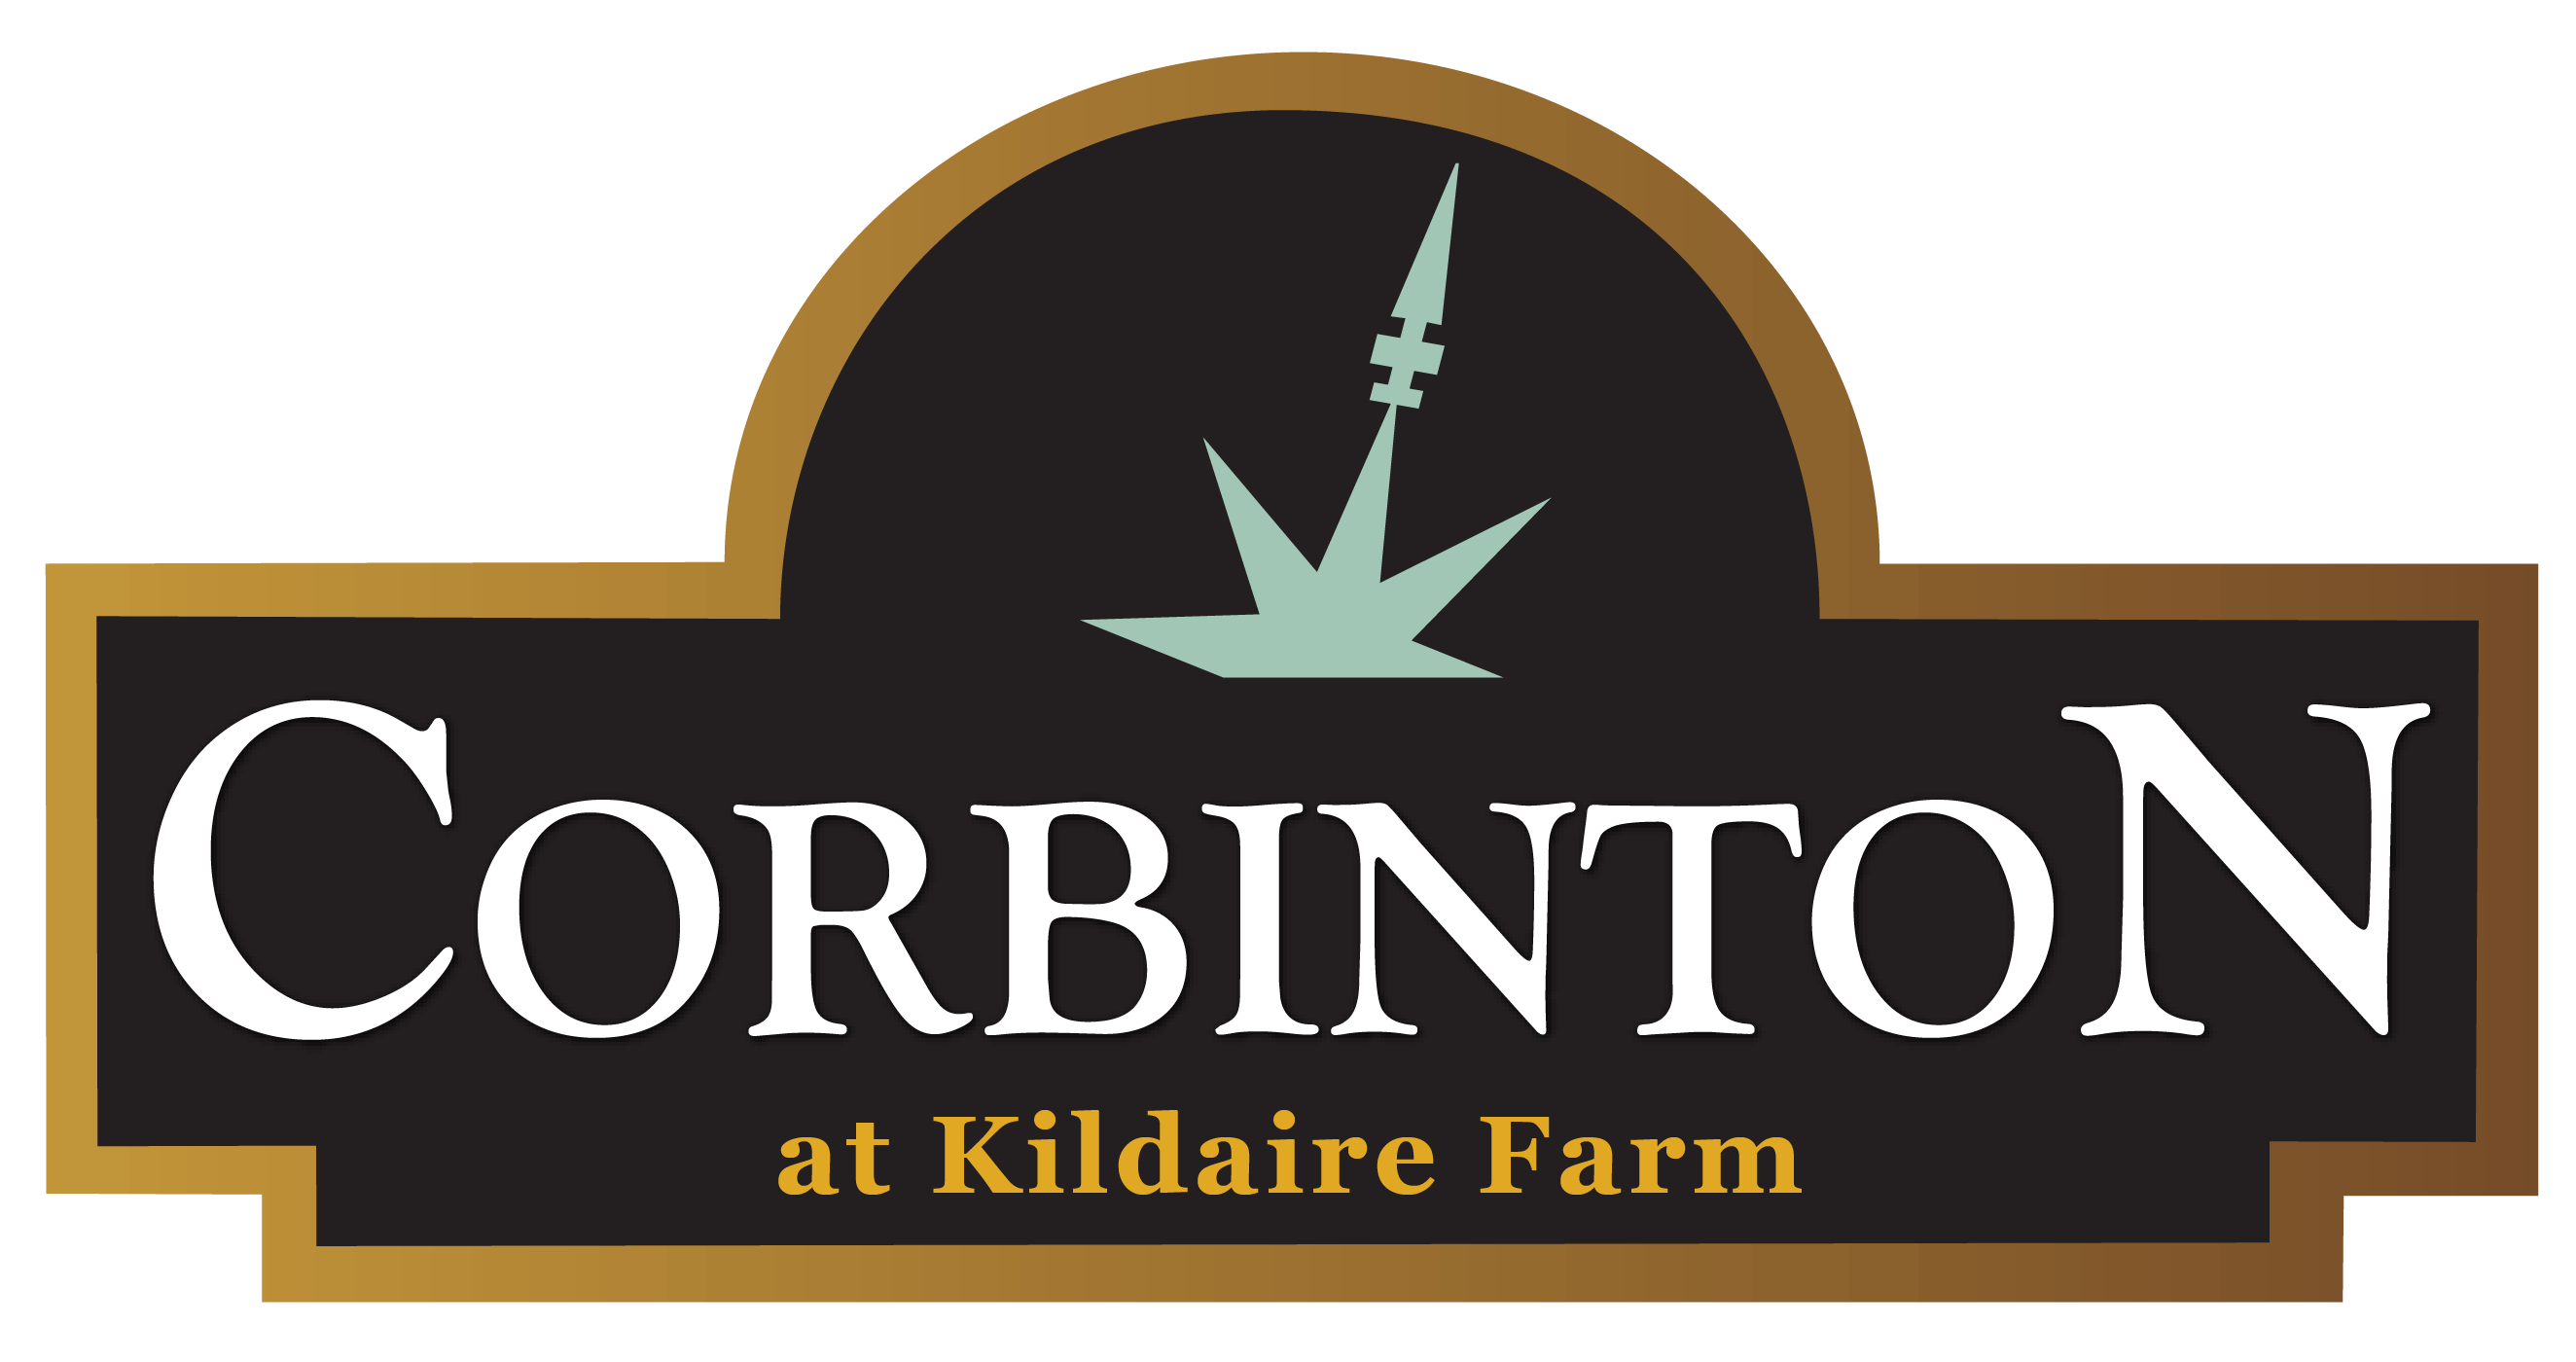 Corbinton at Kildaire Farm